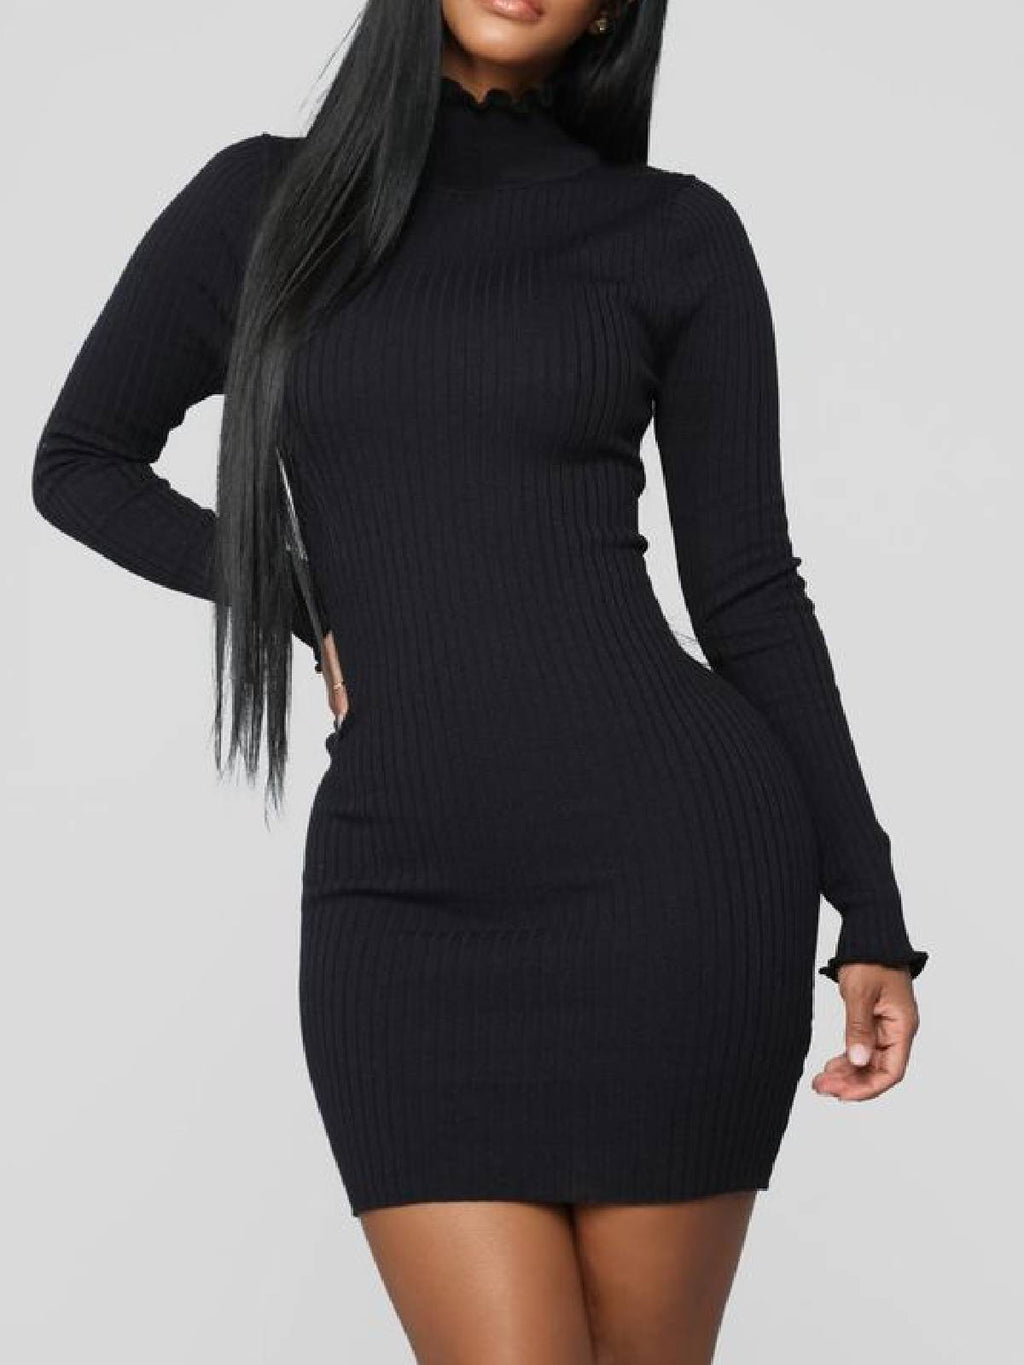 Black Plus Size Knitted Long Sleeve Stand Collar Day Work Pencil Bodycon Dress Rikkishop